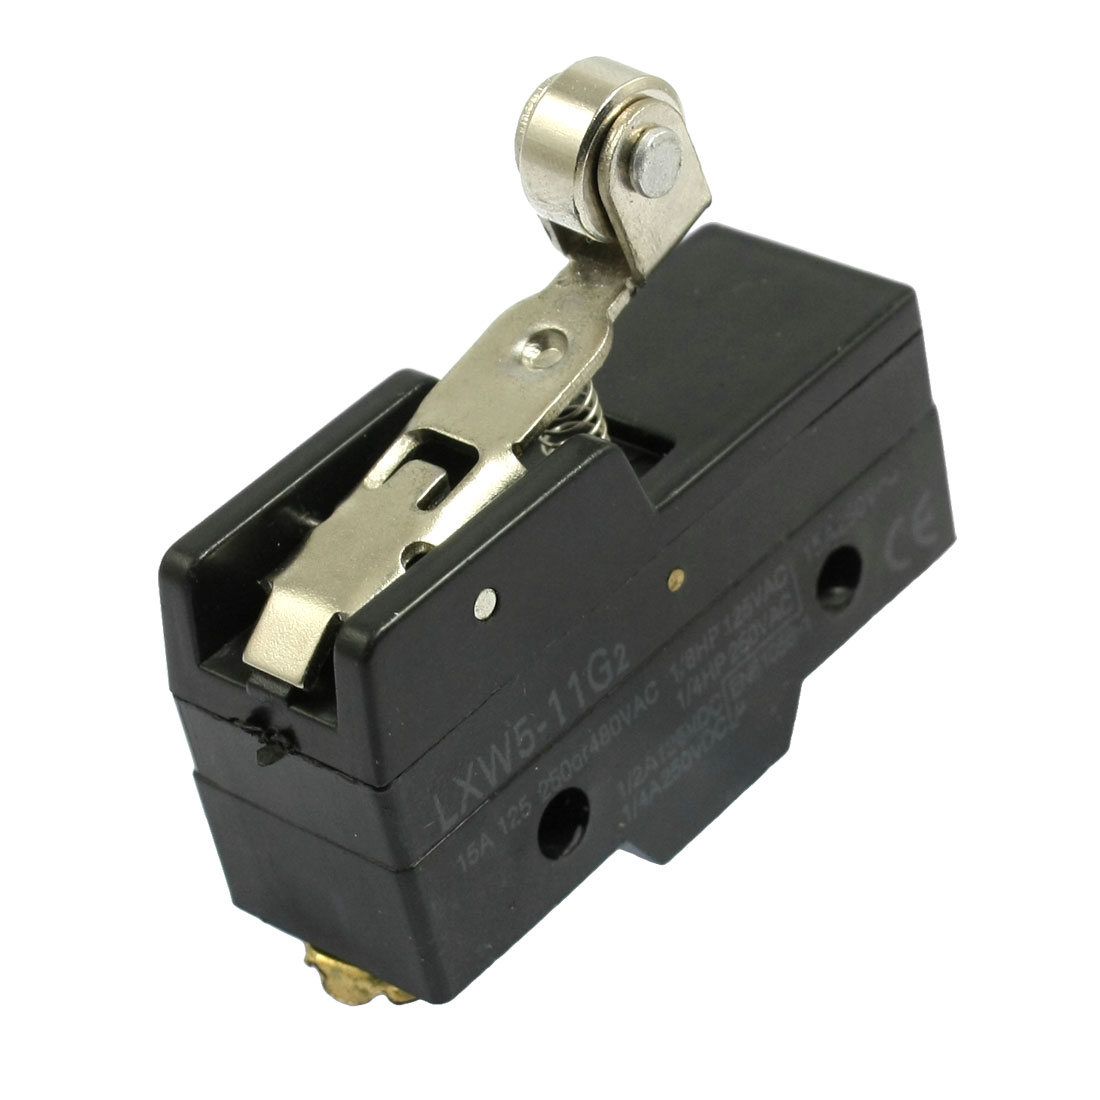 LXW5-11G2 1NO 1NC SPDT Momentary Long Roller Hinge Lever Arm Micro Switch